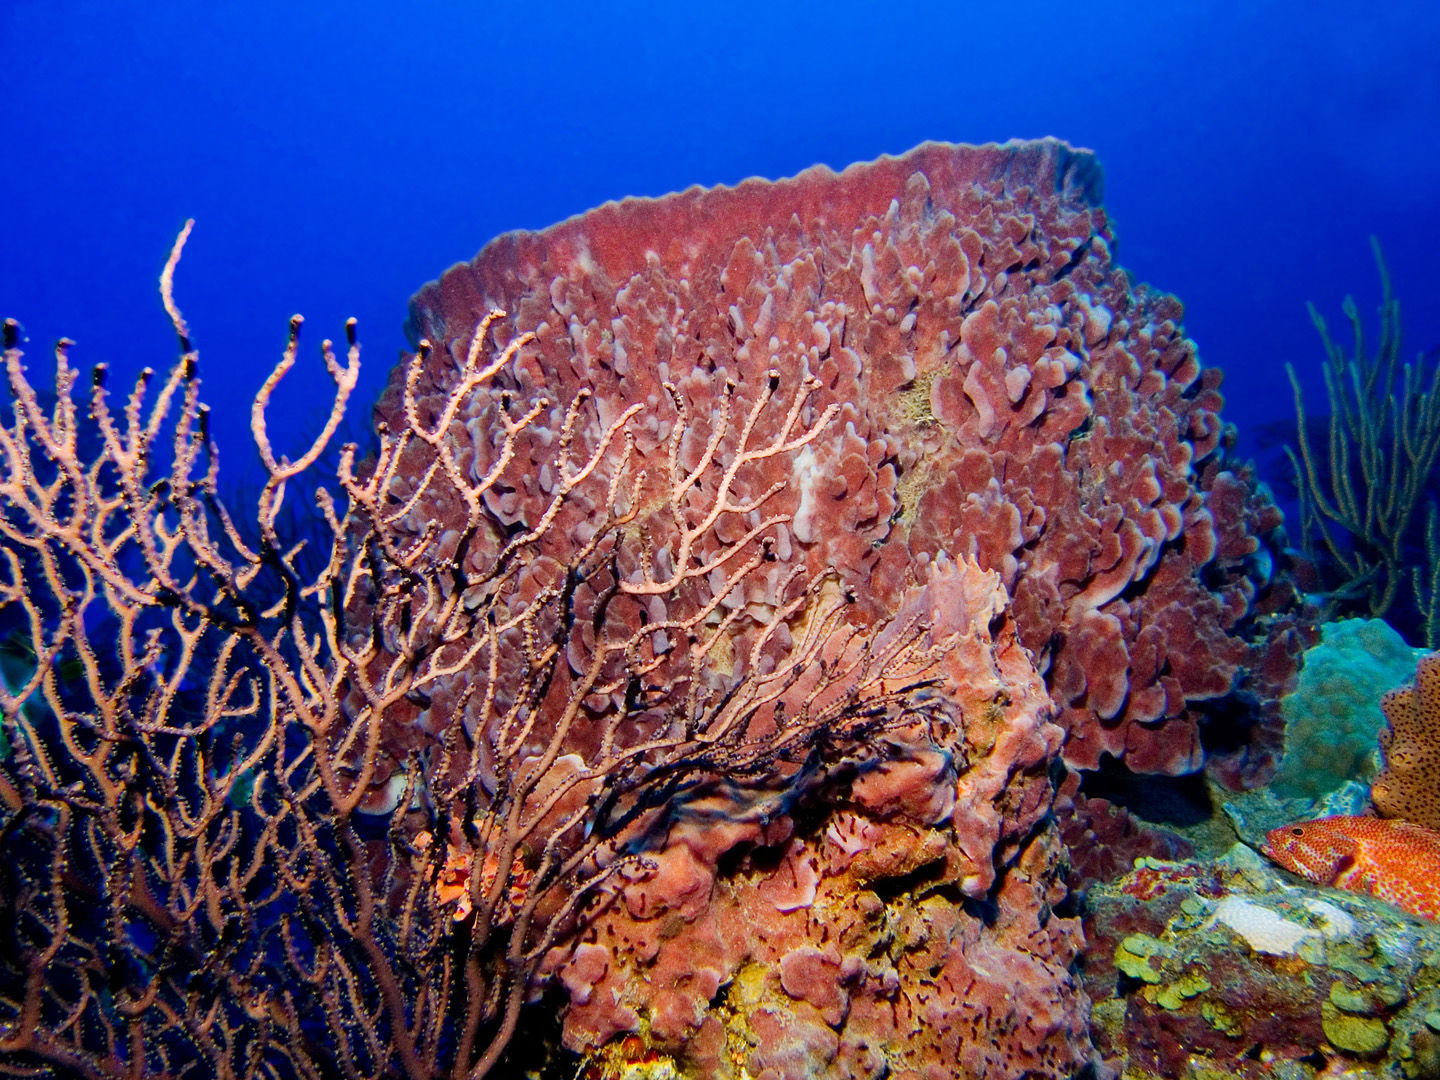 The coral reefs of Saba offer the intrepid divers many wondrous creatures like this large barrel sponge to see